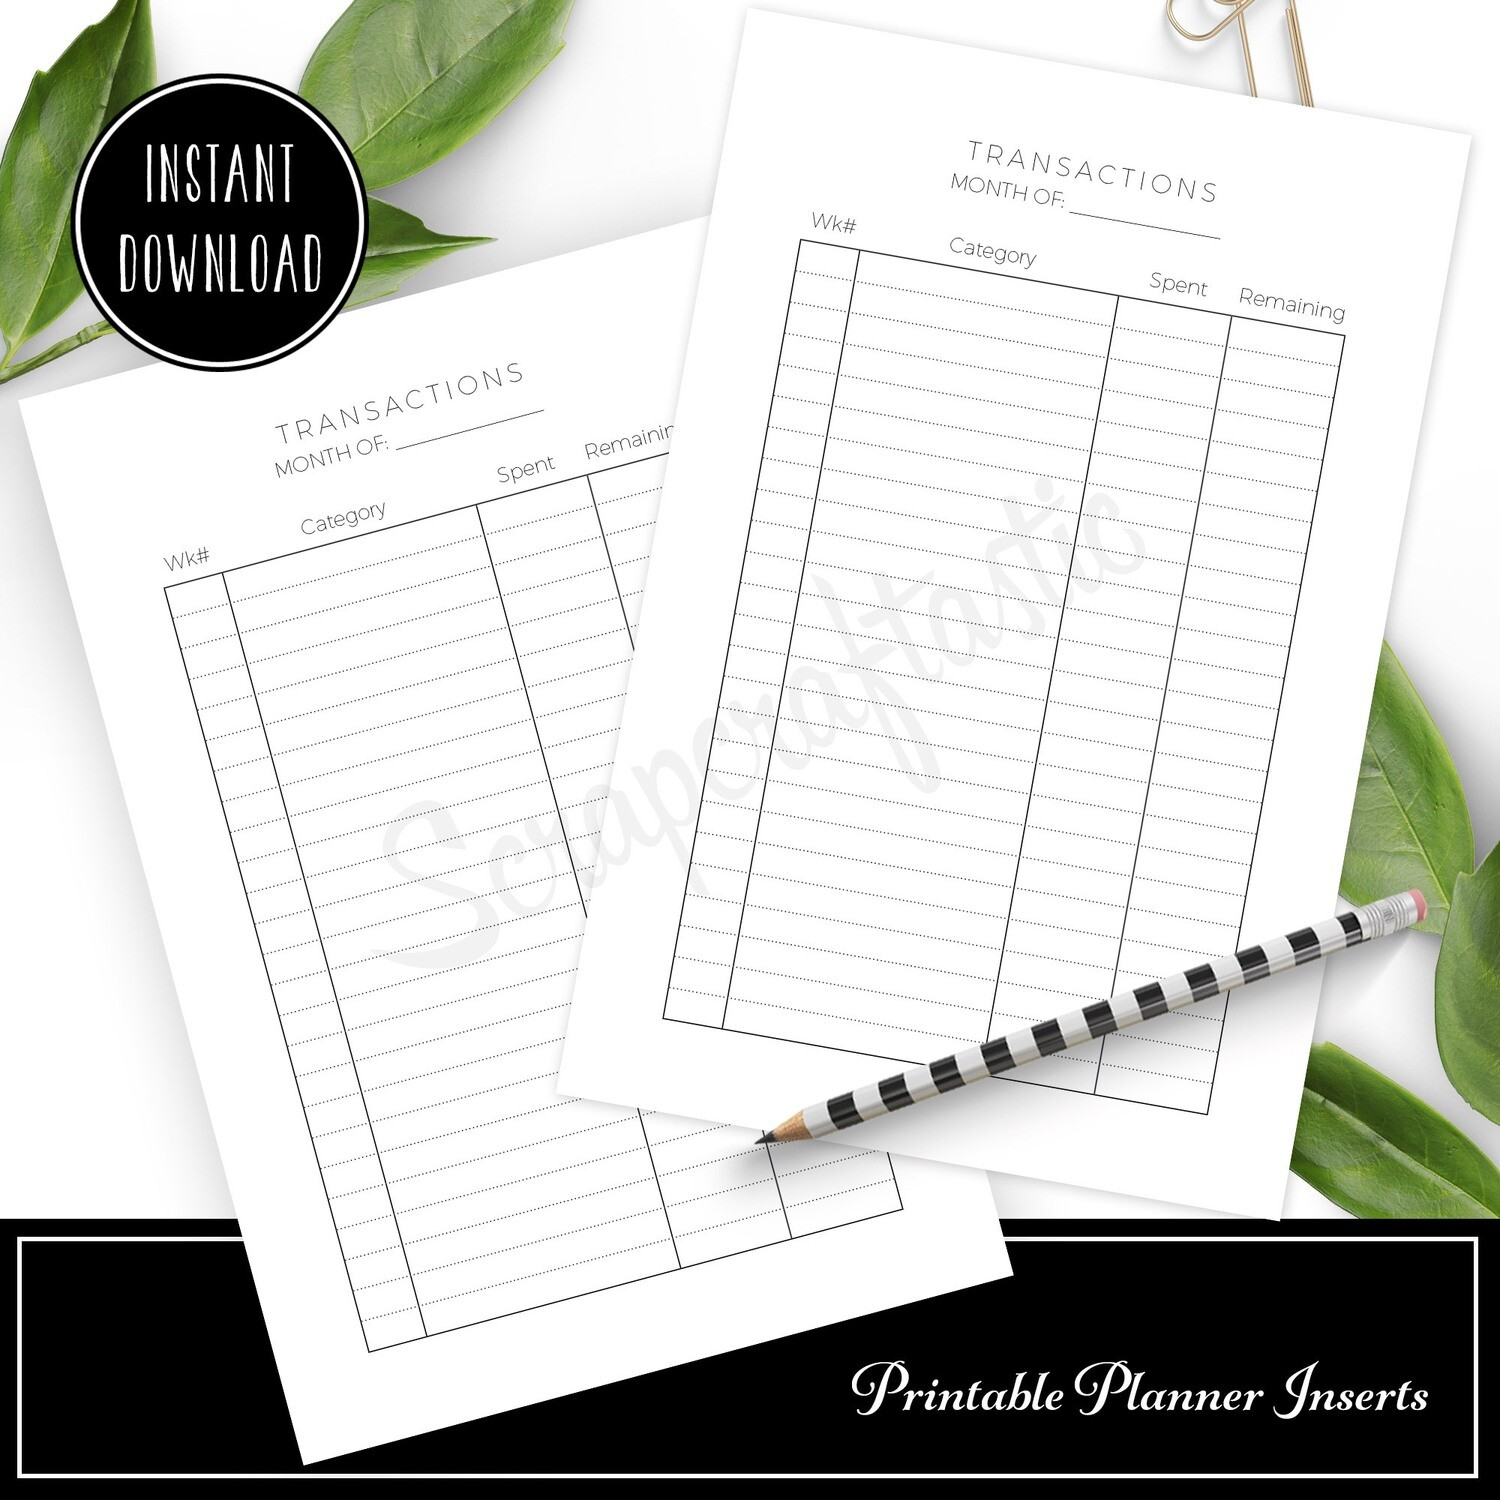 MINI DISC - Transactions Budget Printable Planner Inserts